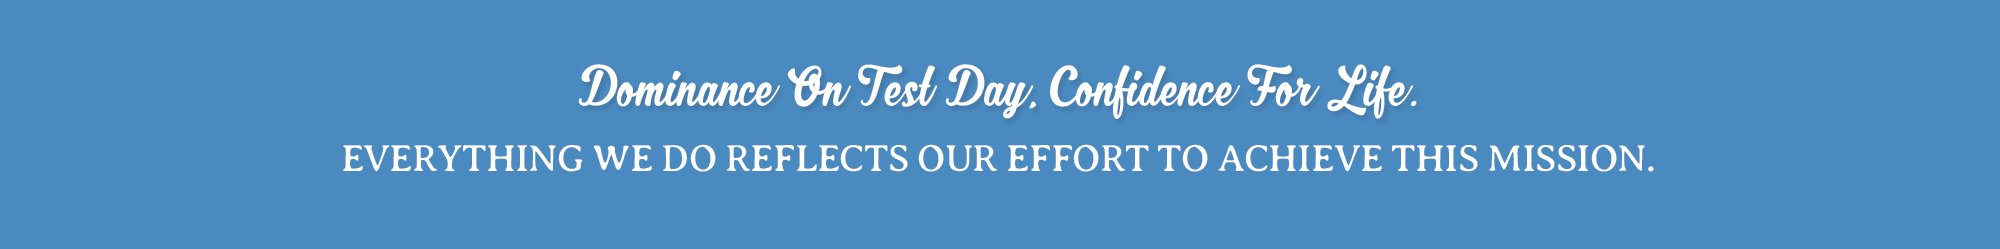 BrainStorm confidence on test day through college simulation tests in Bergen County